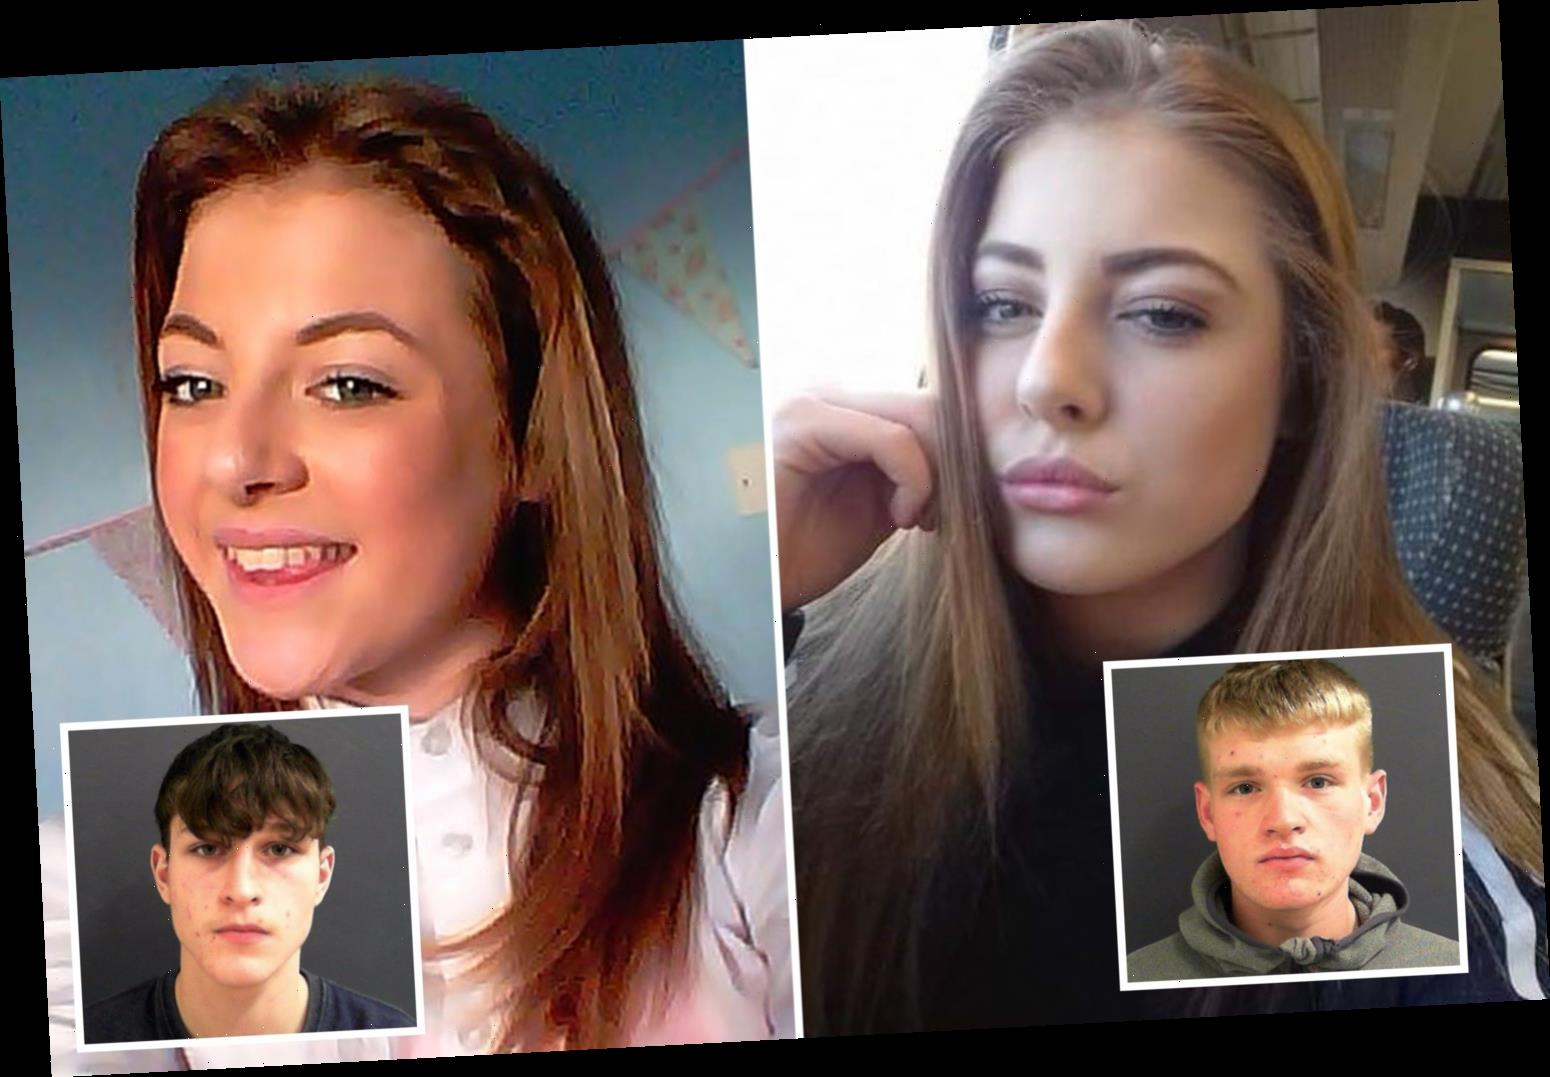 Devastated mum of girl, 15, who died after taking £10 MDMA says she misses her 'everyday' as thugs who sold drugs jailed